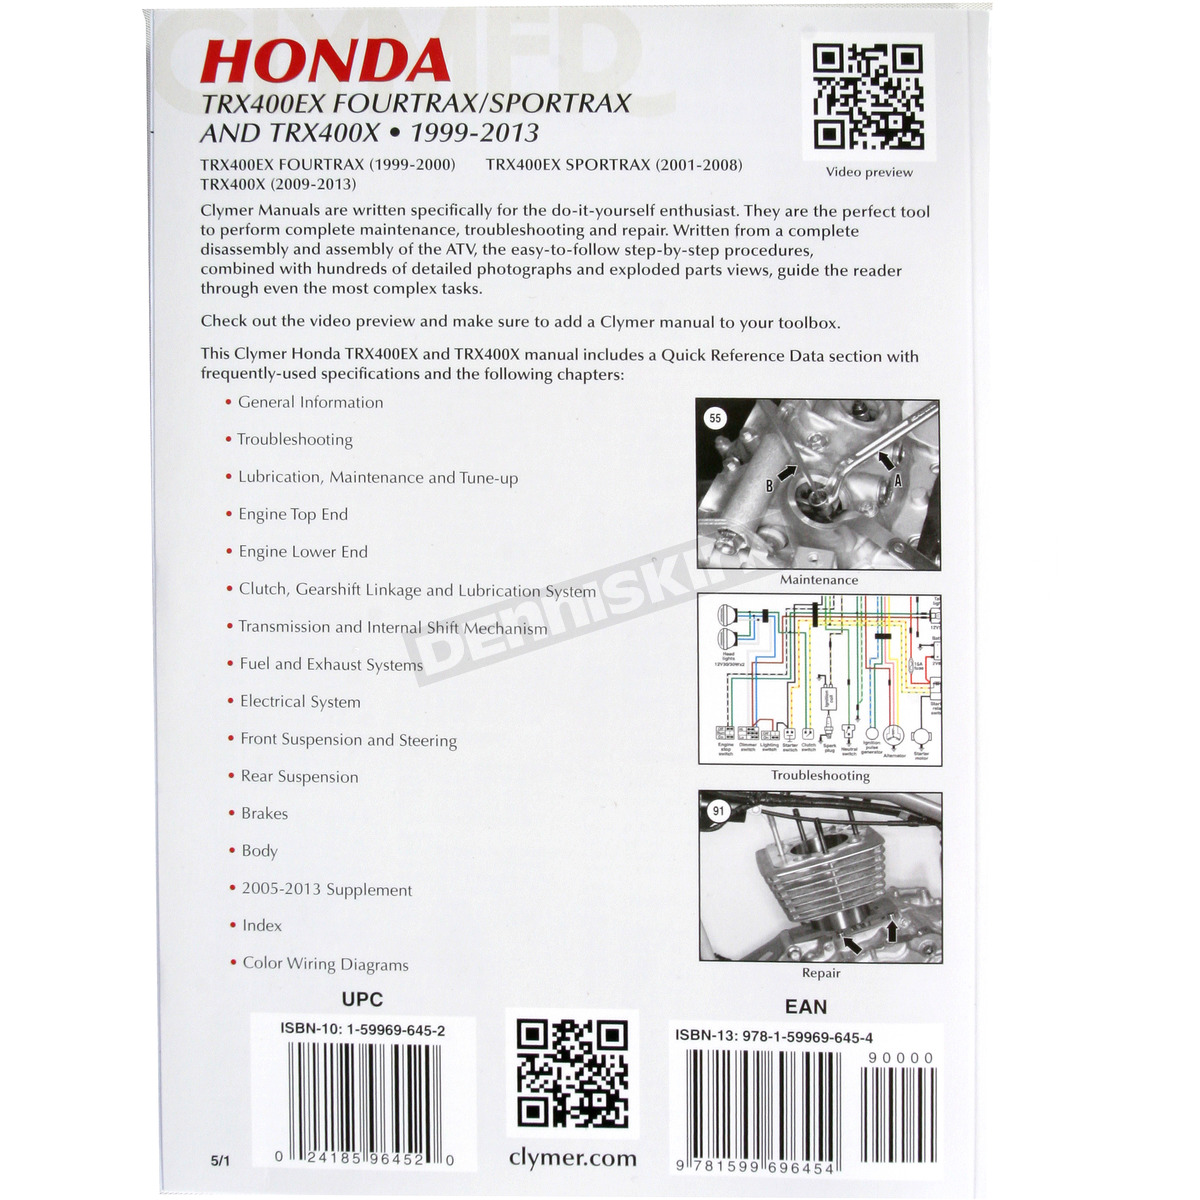 2014 Honda Trx400x Service Manual